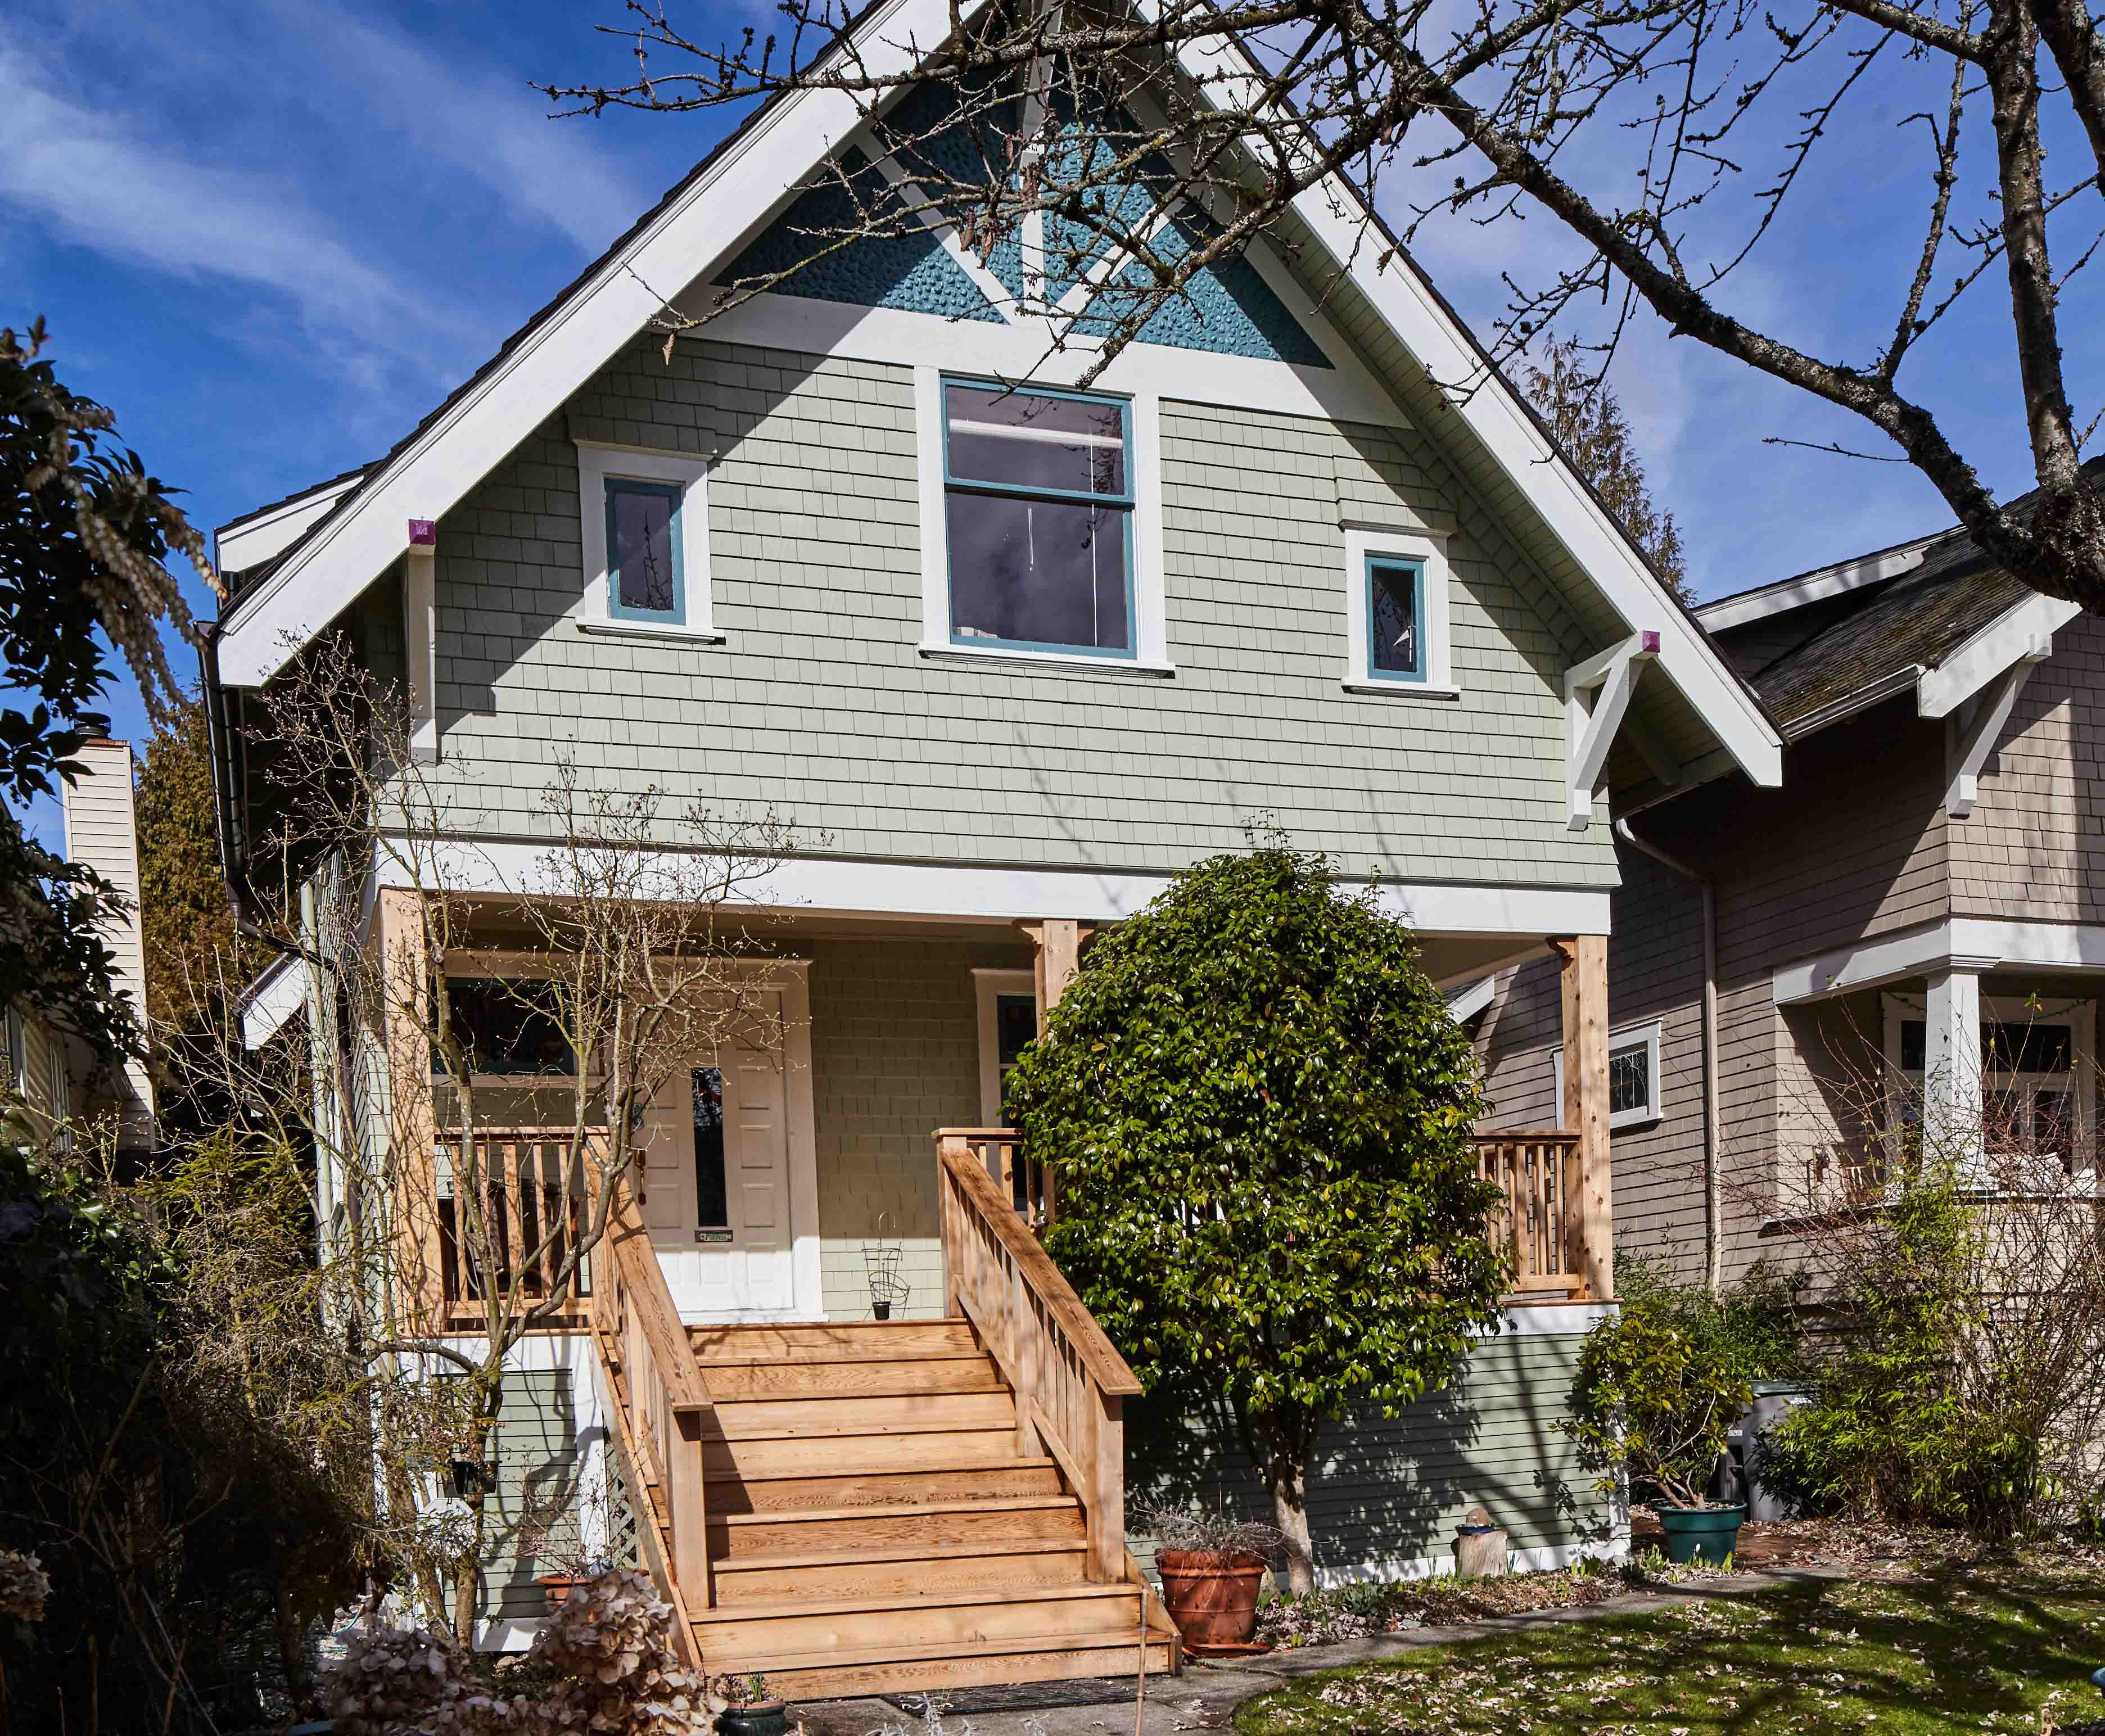 Vancouver Heritage Foundation's 15th Annual Tour – Price Tags